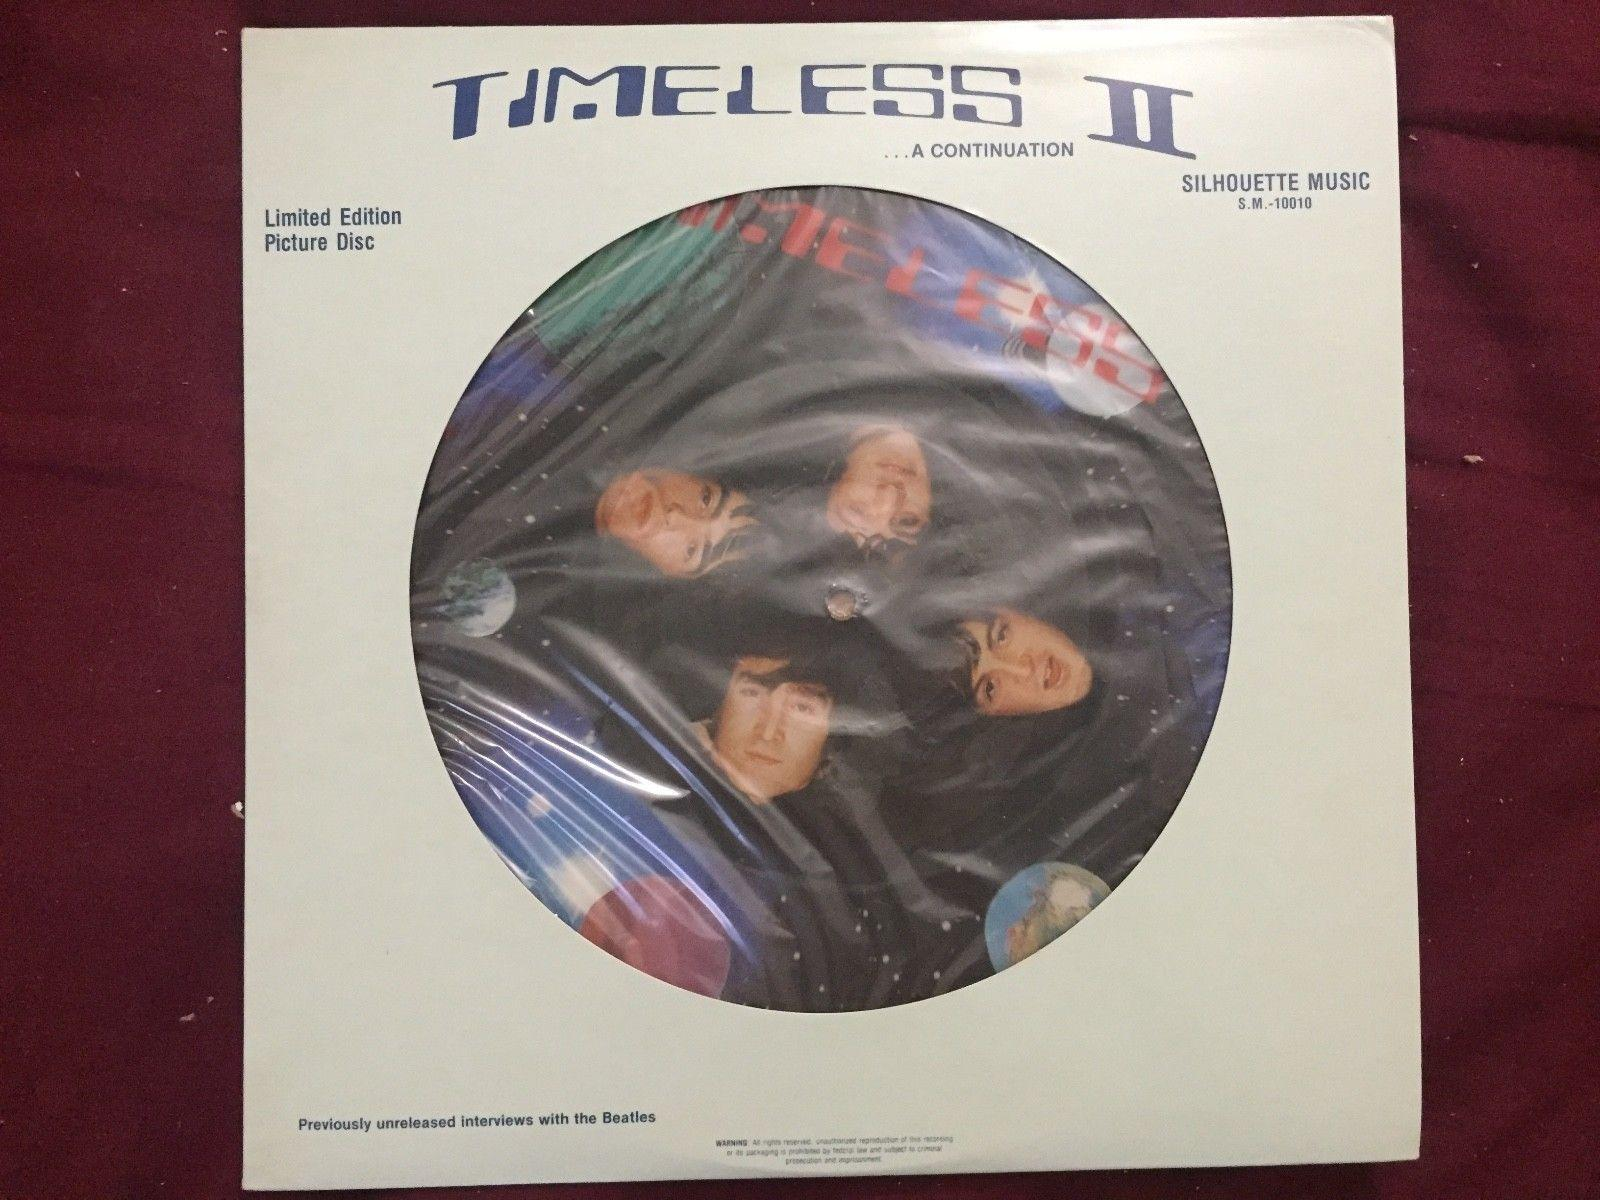 THE BEATLES TIMELESS II LIMITED EDITION PICTURE DISC VINYL RECORD LP VG++++